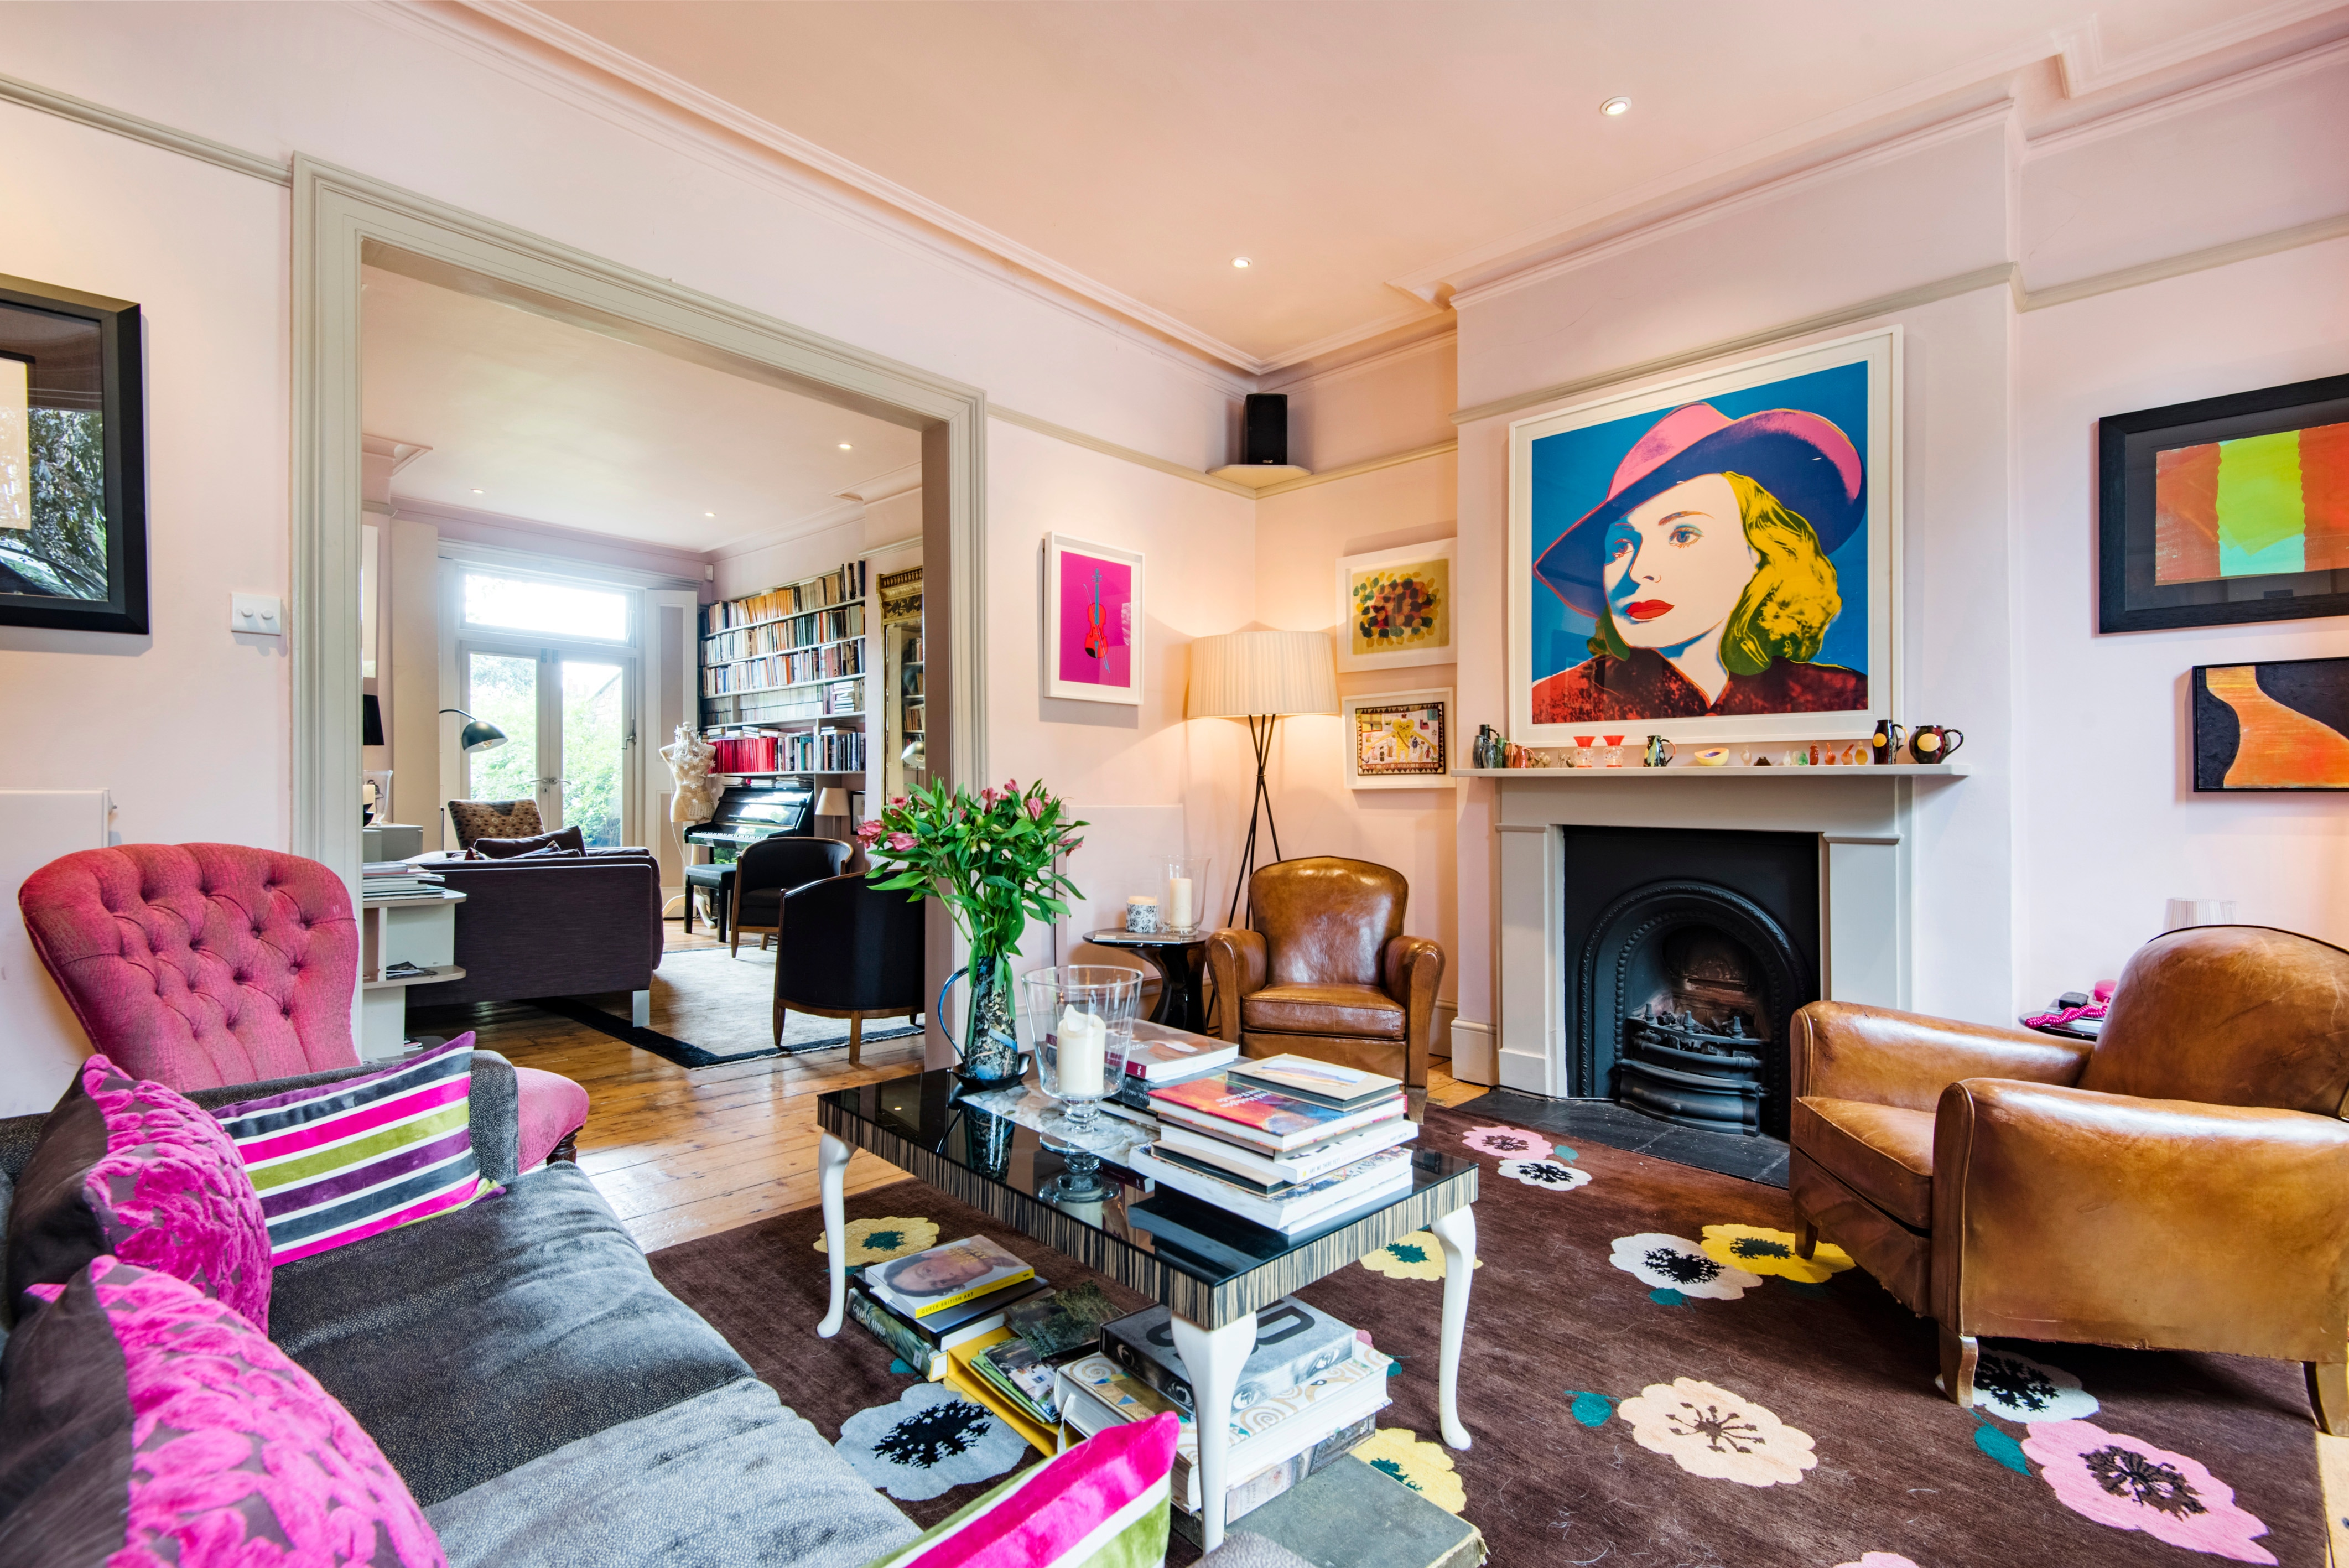 Property Image 1 - Fabulous Camden Townhouse near Hampstead Heath